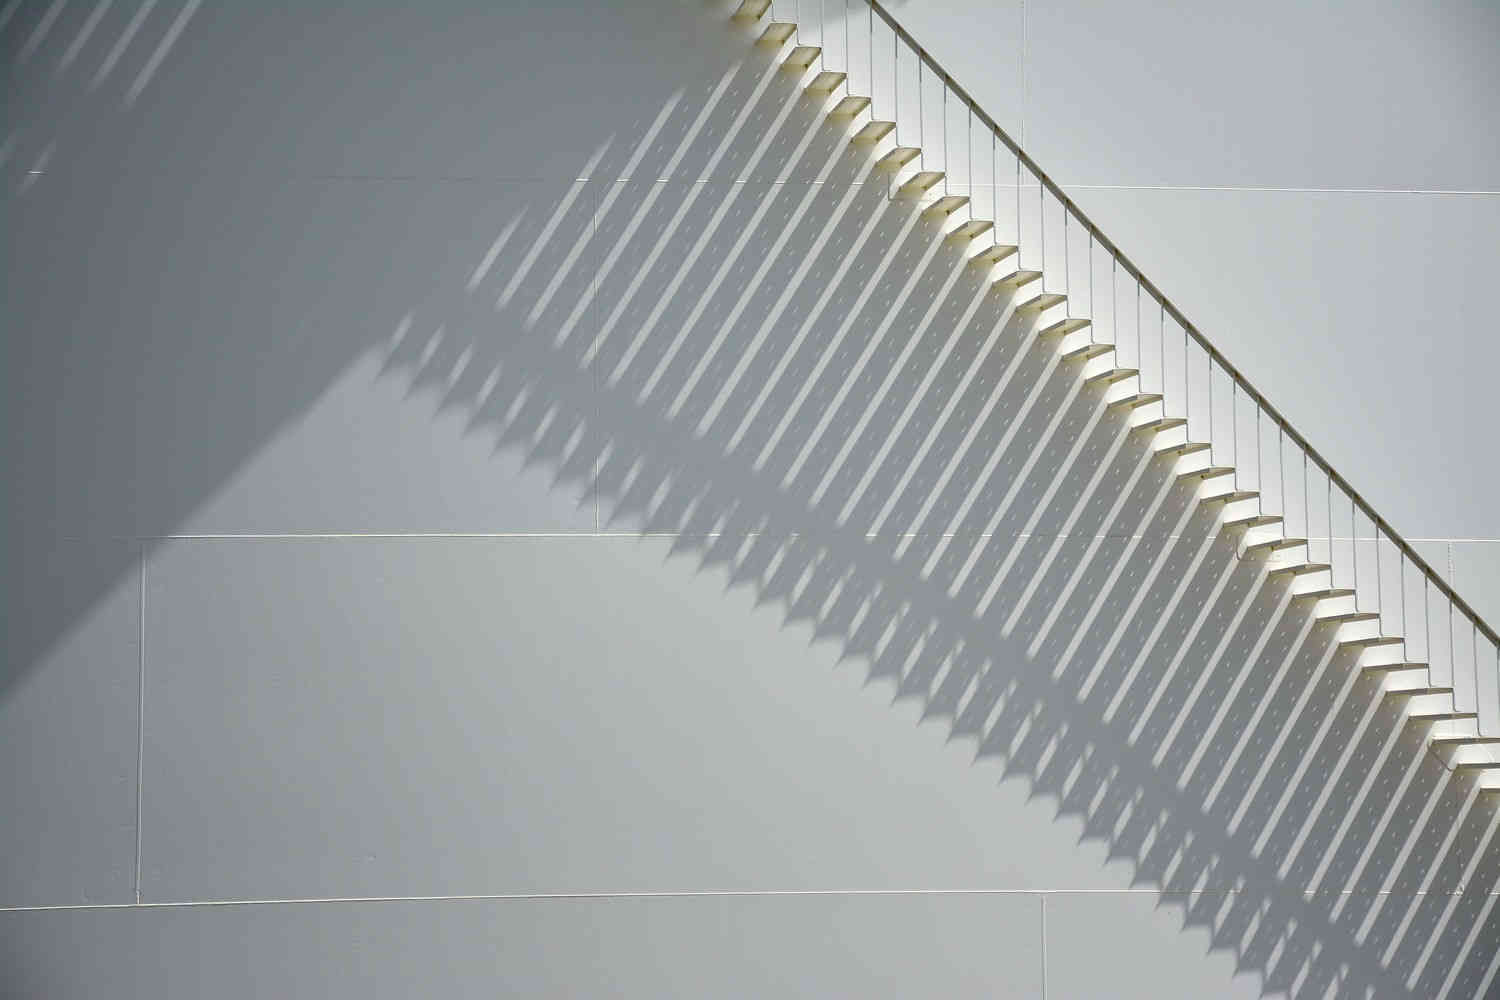 Shadow of Stairs